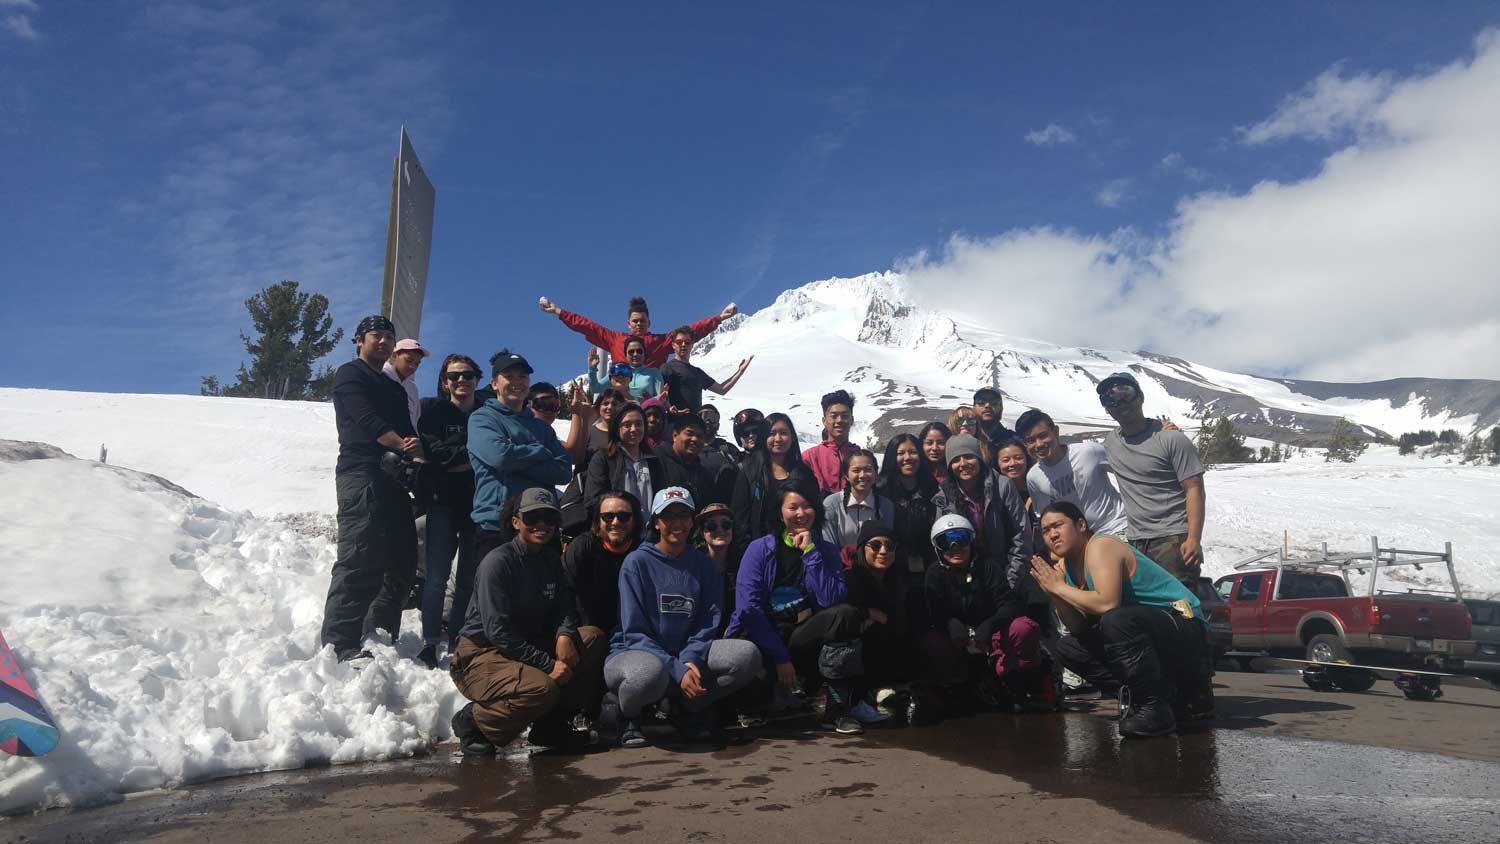 tSB group photo at Mt. Hood 2017